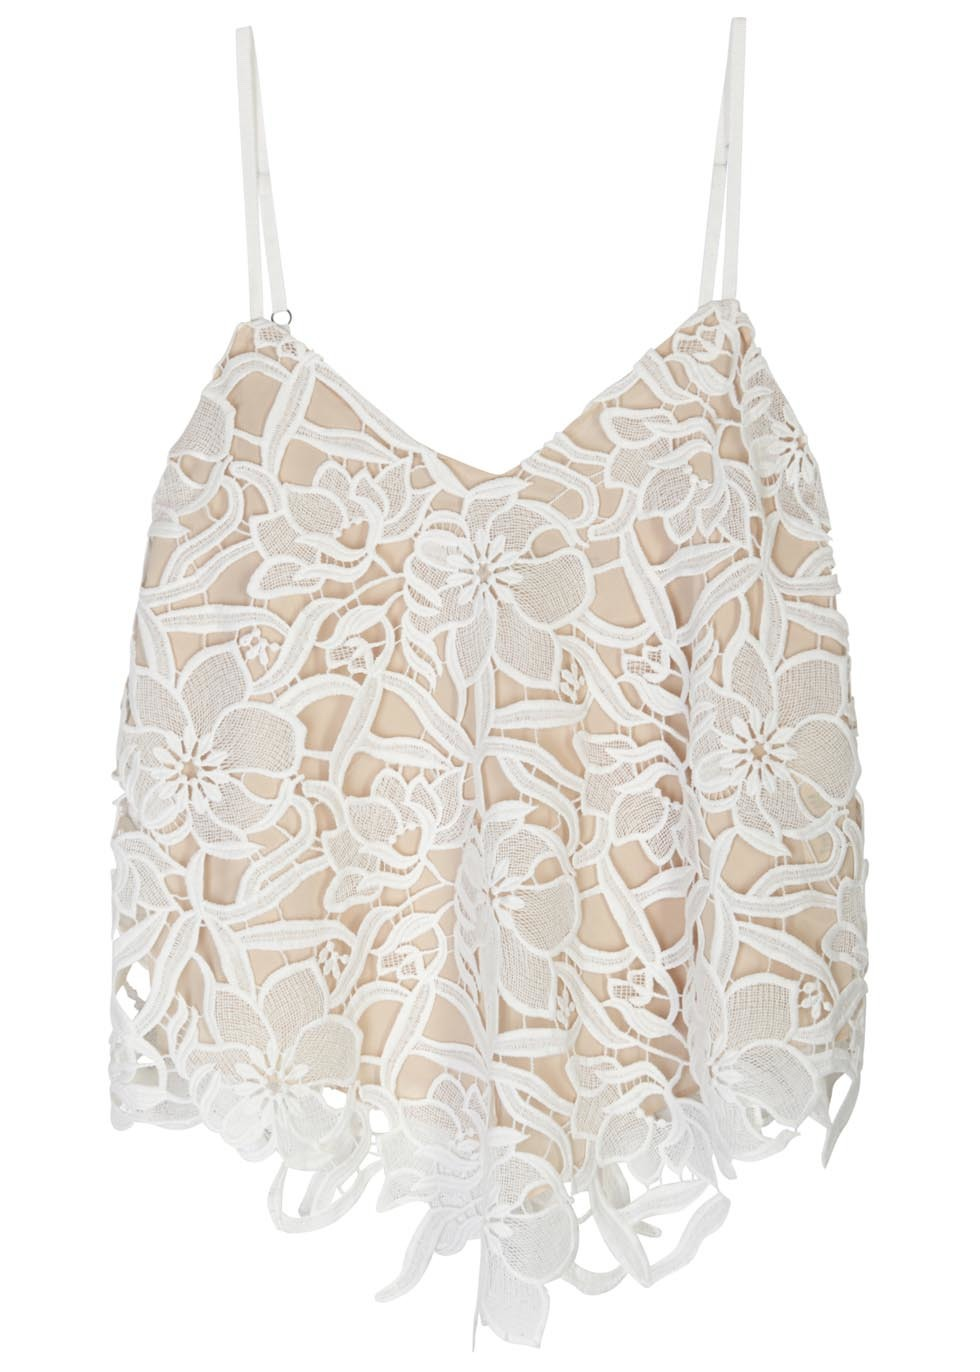 Emmeline White Guipure Lace Top - neckline: low v-neck; sleeve style: spaghetti straps; pattern: plain; length: cropped; secondary colour: white; predominant colour: ivory/cream; style: top; fibres: polyester/polyamide - 100%; fit: loose; sleeve length: sleeveless; occasions: holiday, creative work; pattern type: fabric; texture group: other - light to midweight; embellishment: lace; season: s/s 2016; wardrobe: highlight